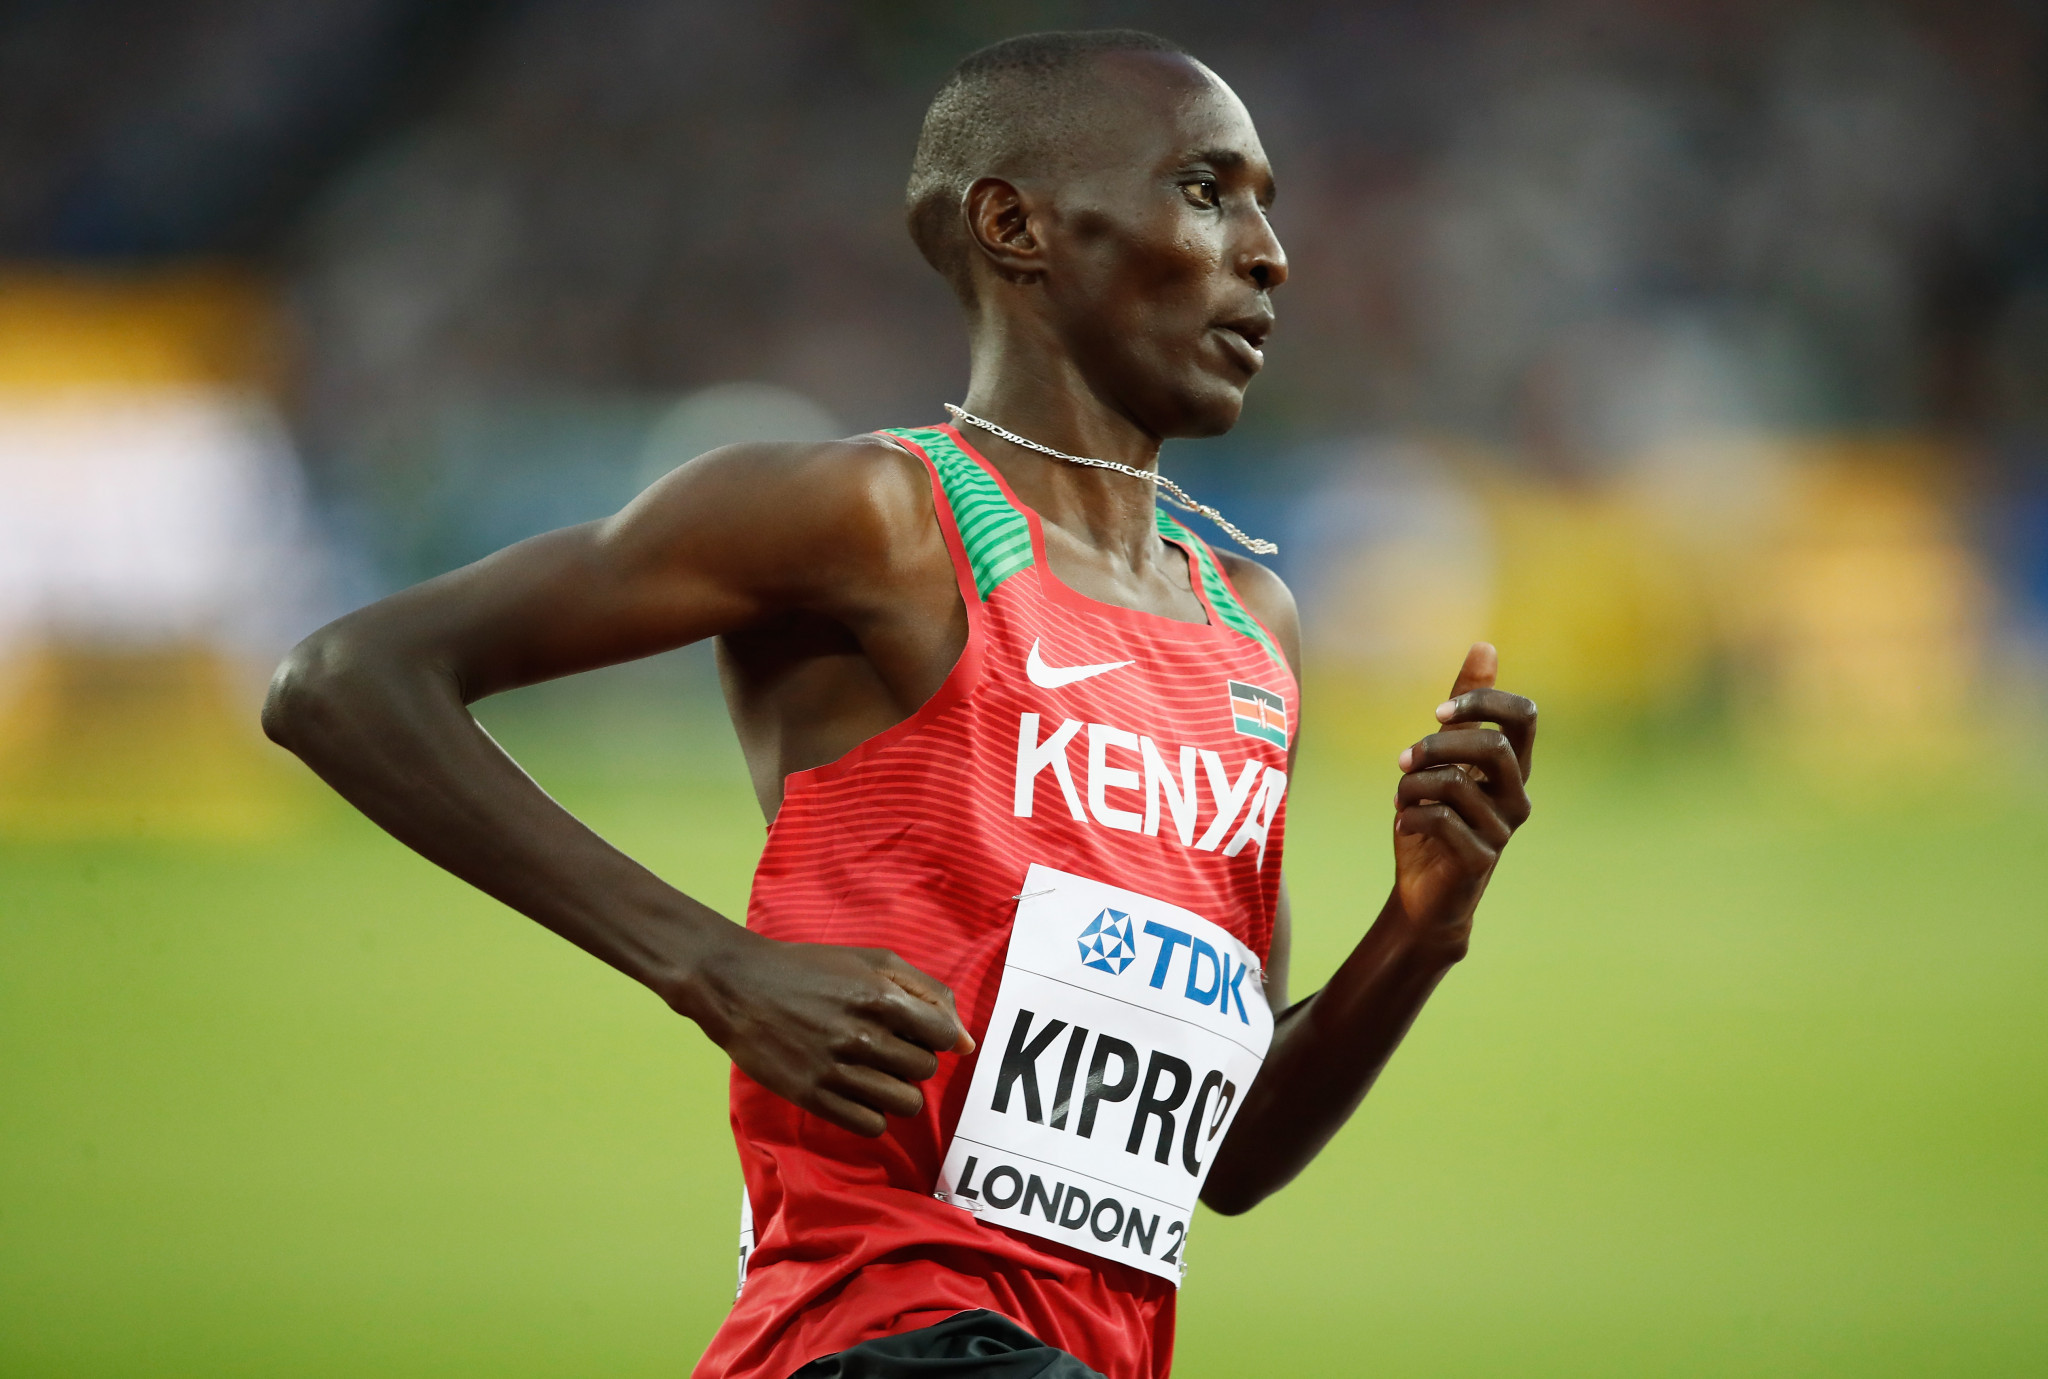 Asbel Kiprop has reportedly been implicated in a doping scandal ©Getty Images